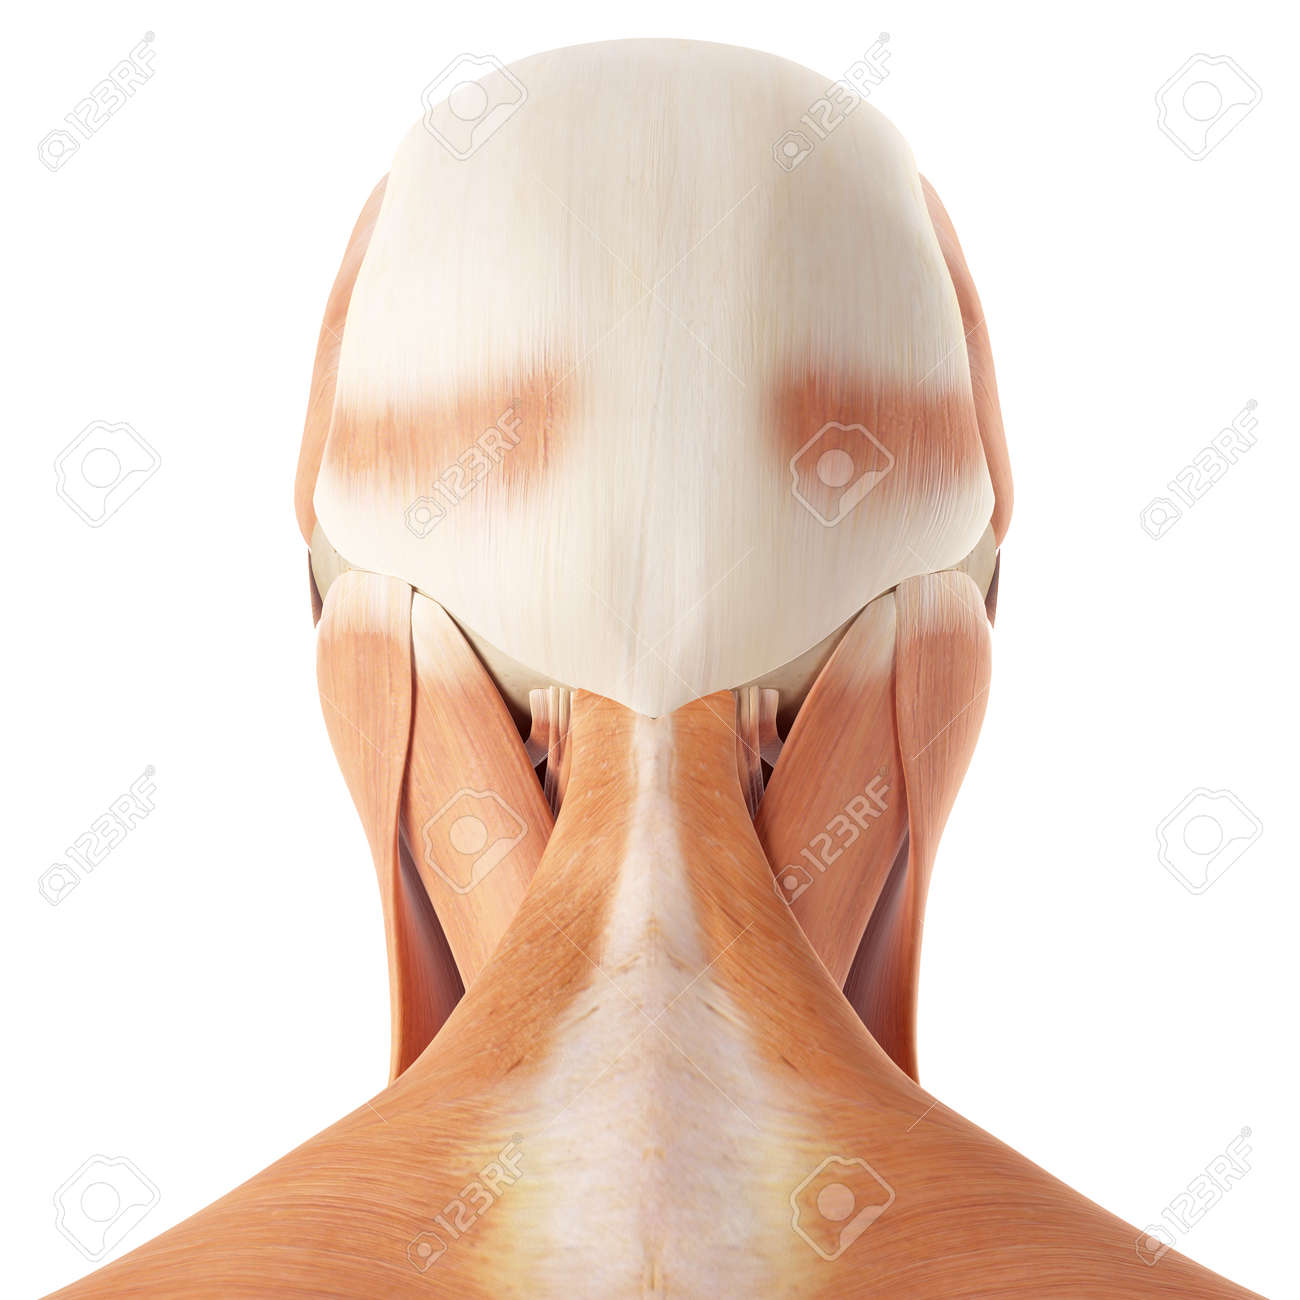 Medical Accurate Illustration Of The Neck Muscles Stock Photo